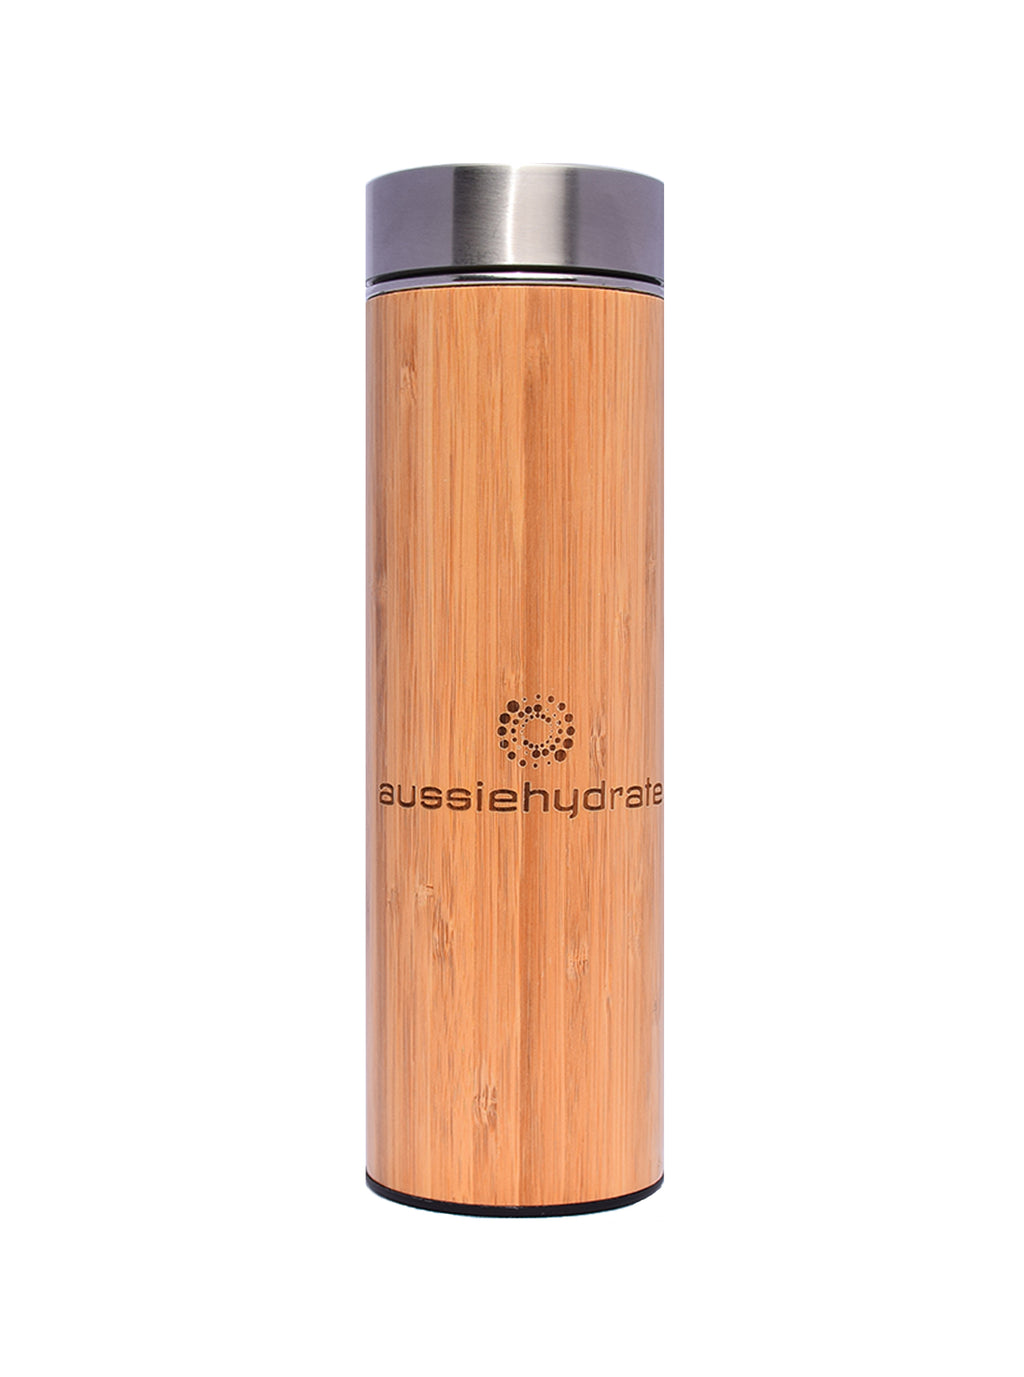 THE MEDITERRANEAN - Bamboo Thermos with infuser - 450ml